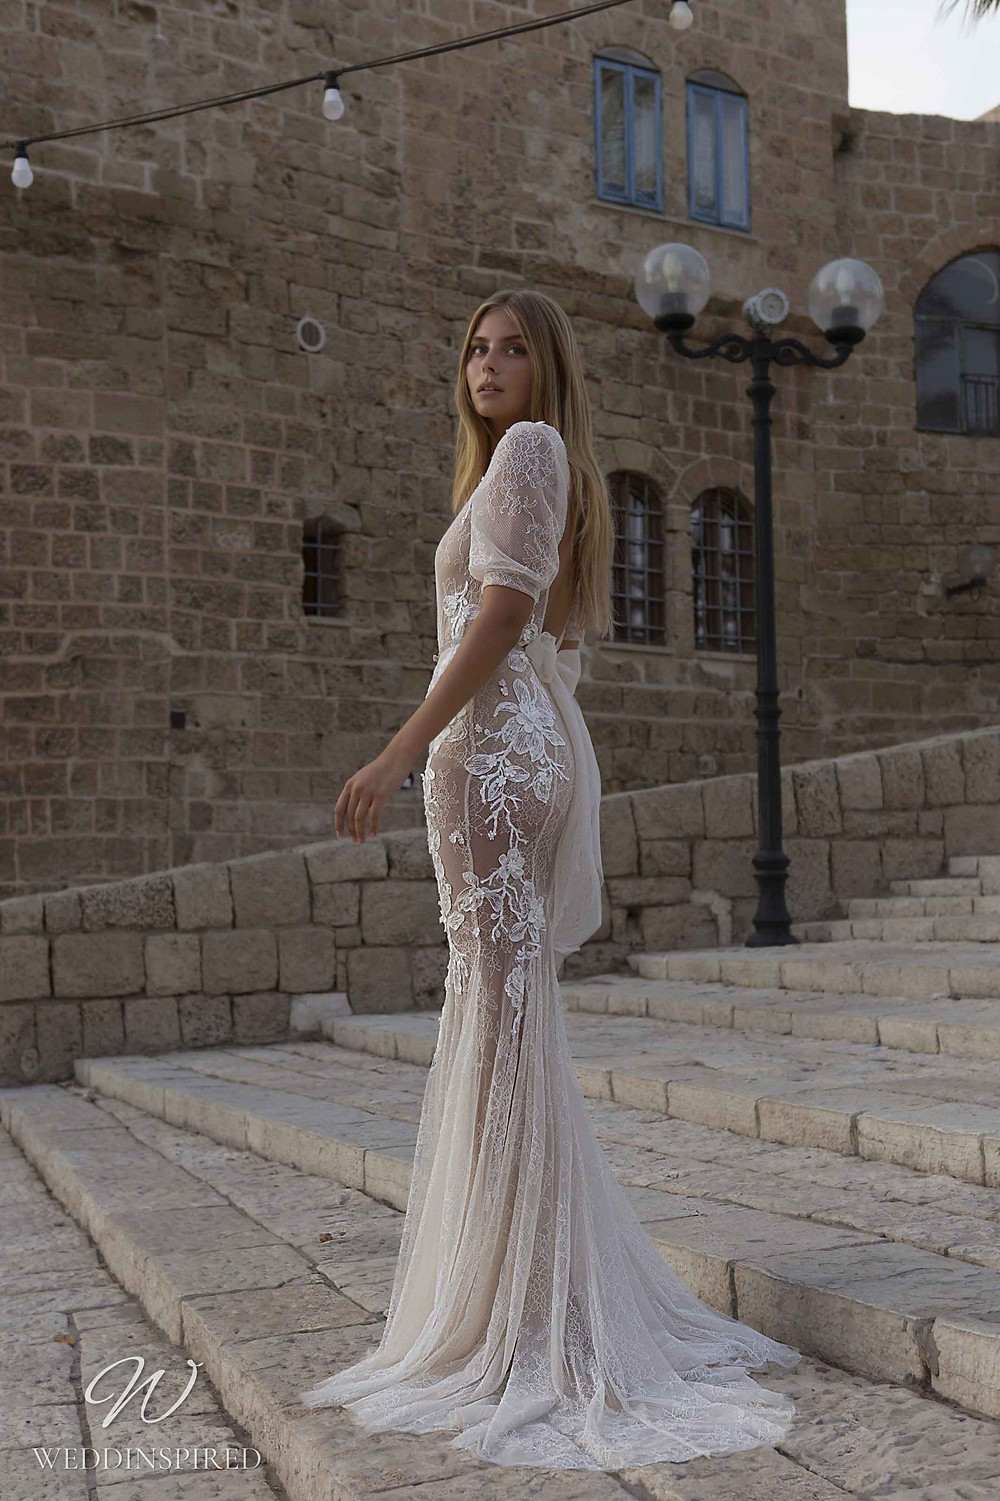 A Berta Priveé No 5 2021 nude lace mermaid wedding dress with a v neck and sleeves